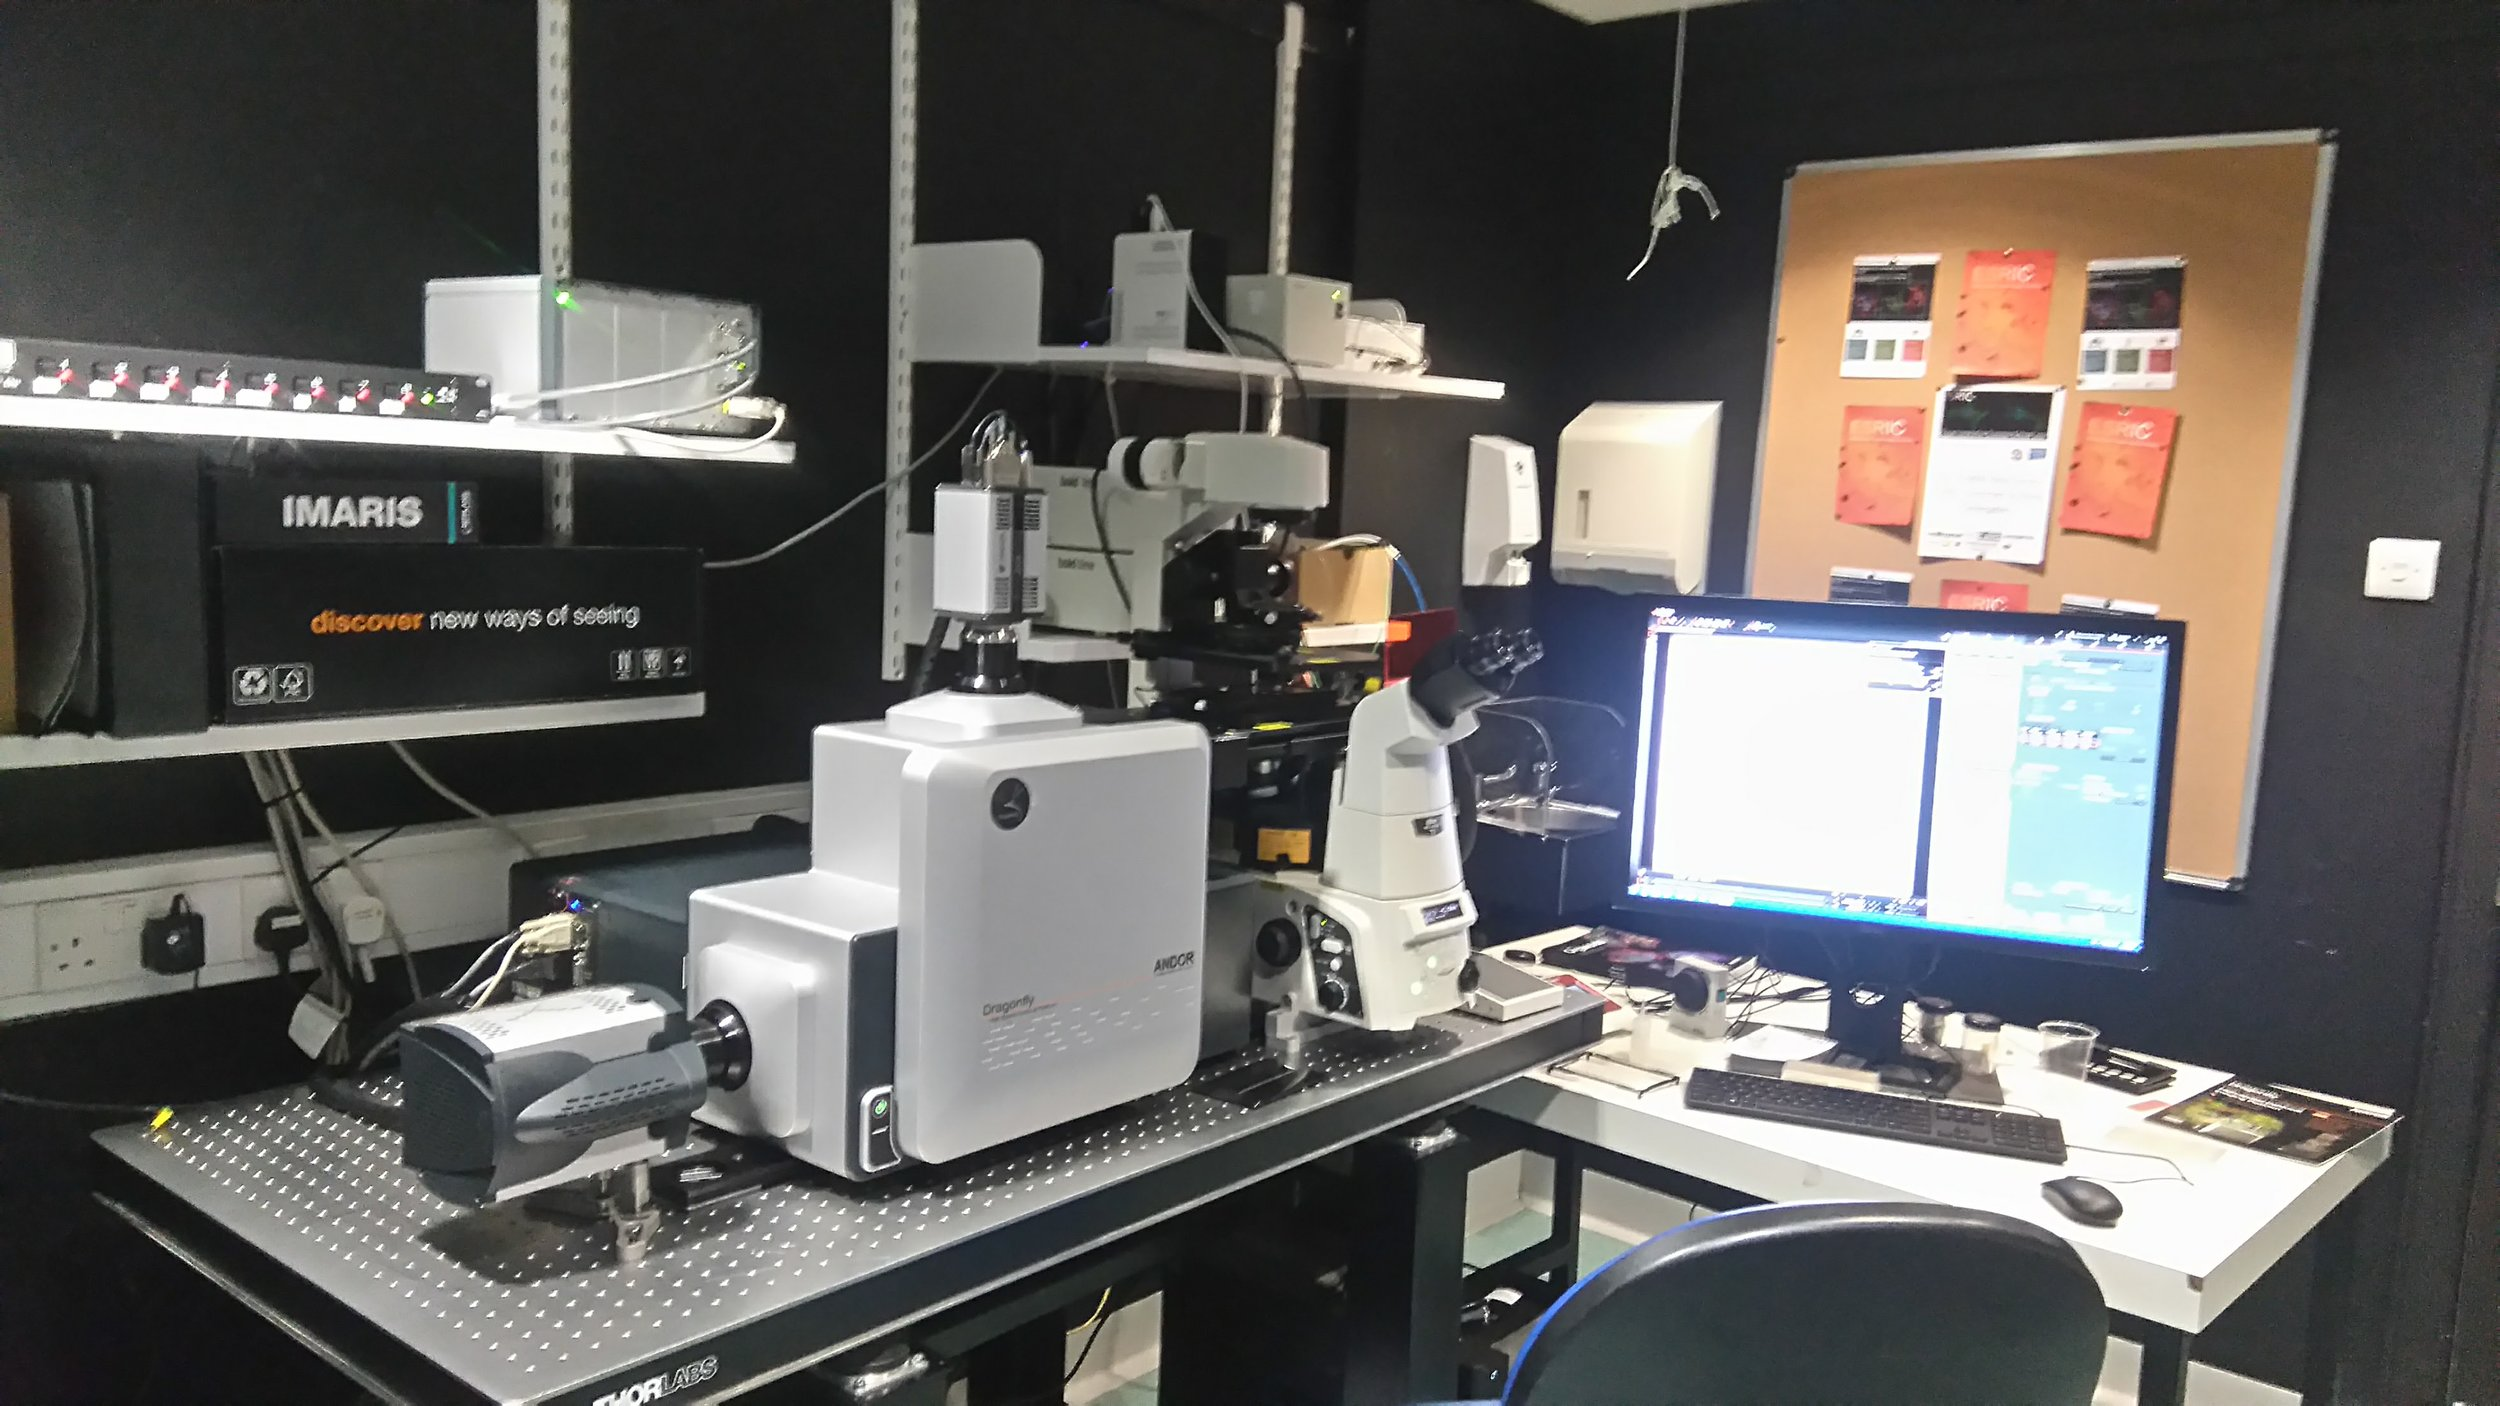 Cost   £30 p/h    Name  Dragonfly   Room  CG18   Manual   Here    Modality  Spinning disk confocal   Fluorophores,  DAPI, CFP, GFP, YFP, RFP, AF647, iRFP/AF700 + BF   Manufacturer  Andor   Objectives  20x, 40x, 60x, 100x   Software  Fusion   Application  Live imaging, 3D imaging, large tile imaging     Offline viewing software:   Here    Technical specs for publications:   Here